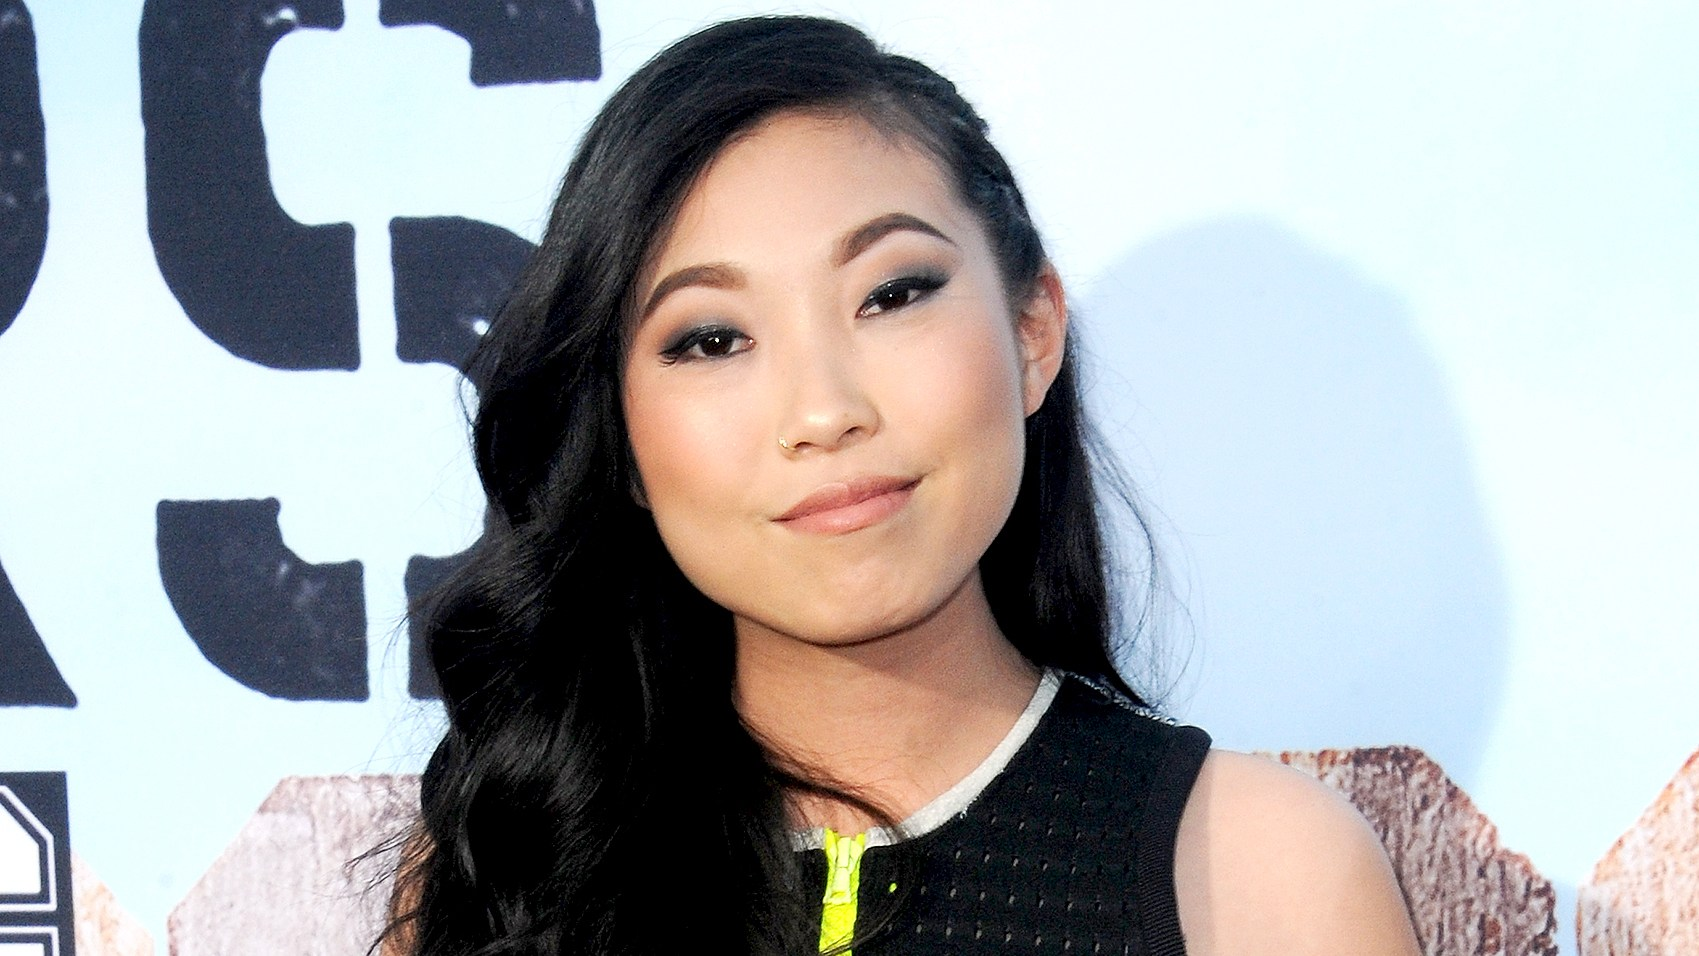 """Nora Lum arrives for the Premiere Of Universal Pictures' """"Neighbors 2: Sorority Rising"""" held at Regency Village Theatre on May 16, 2016 in Westwood, California."""